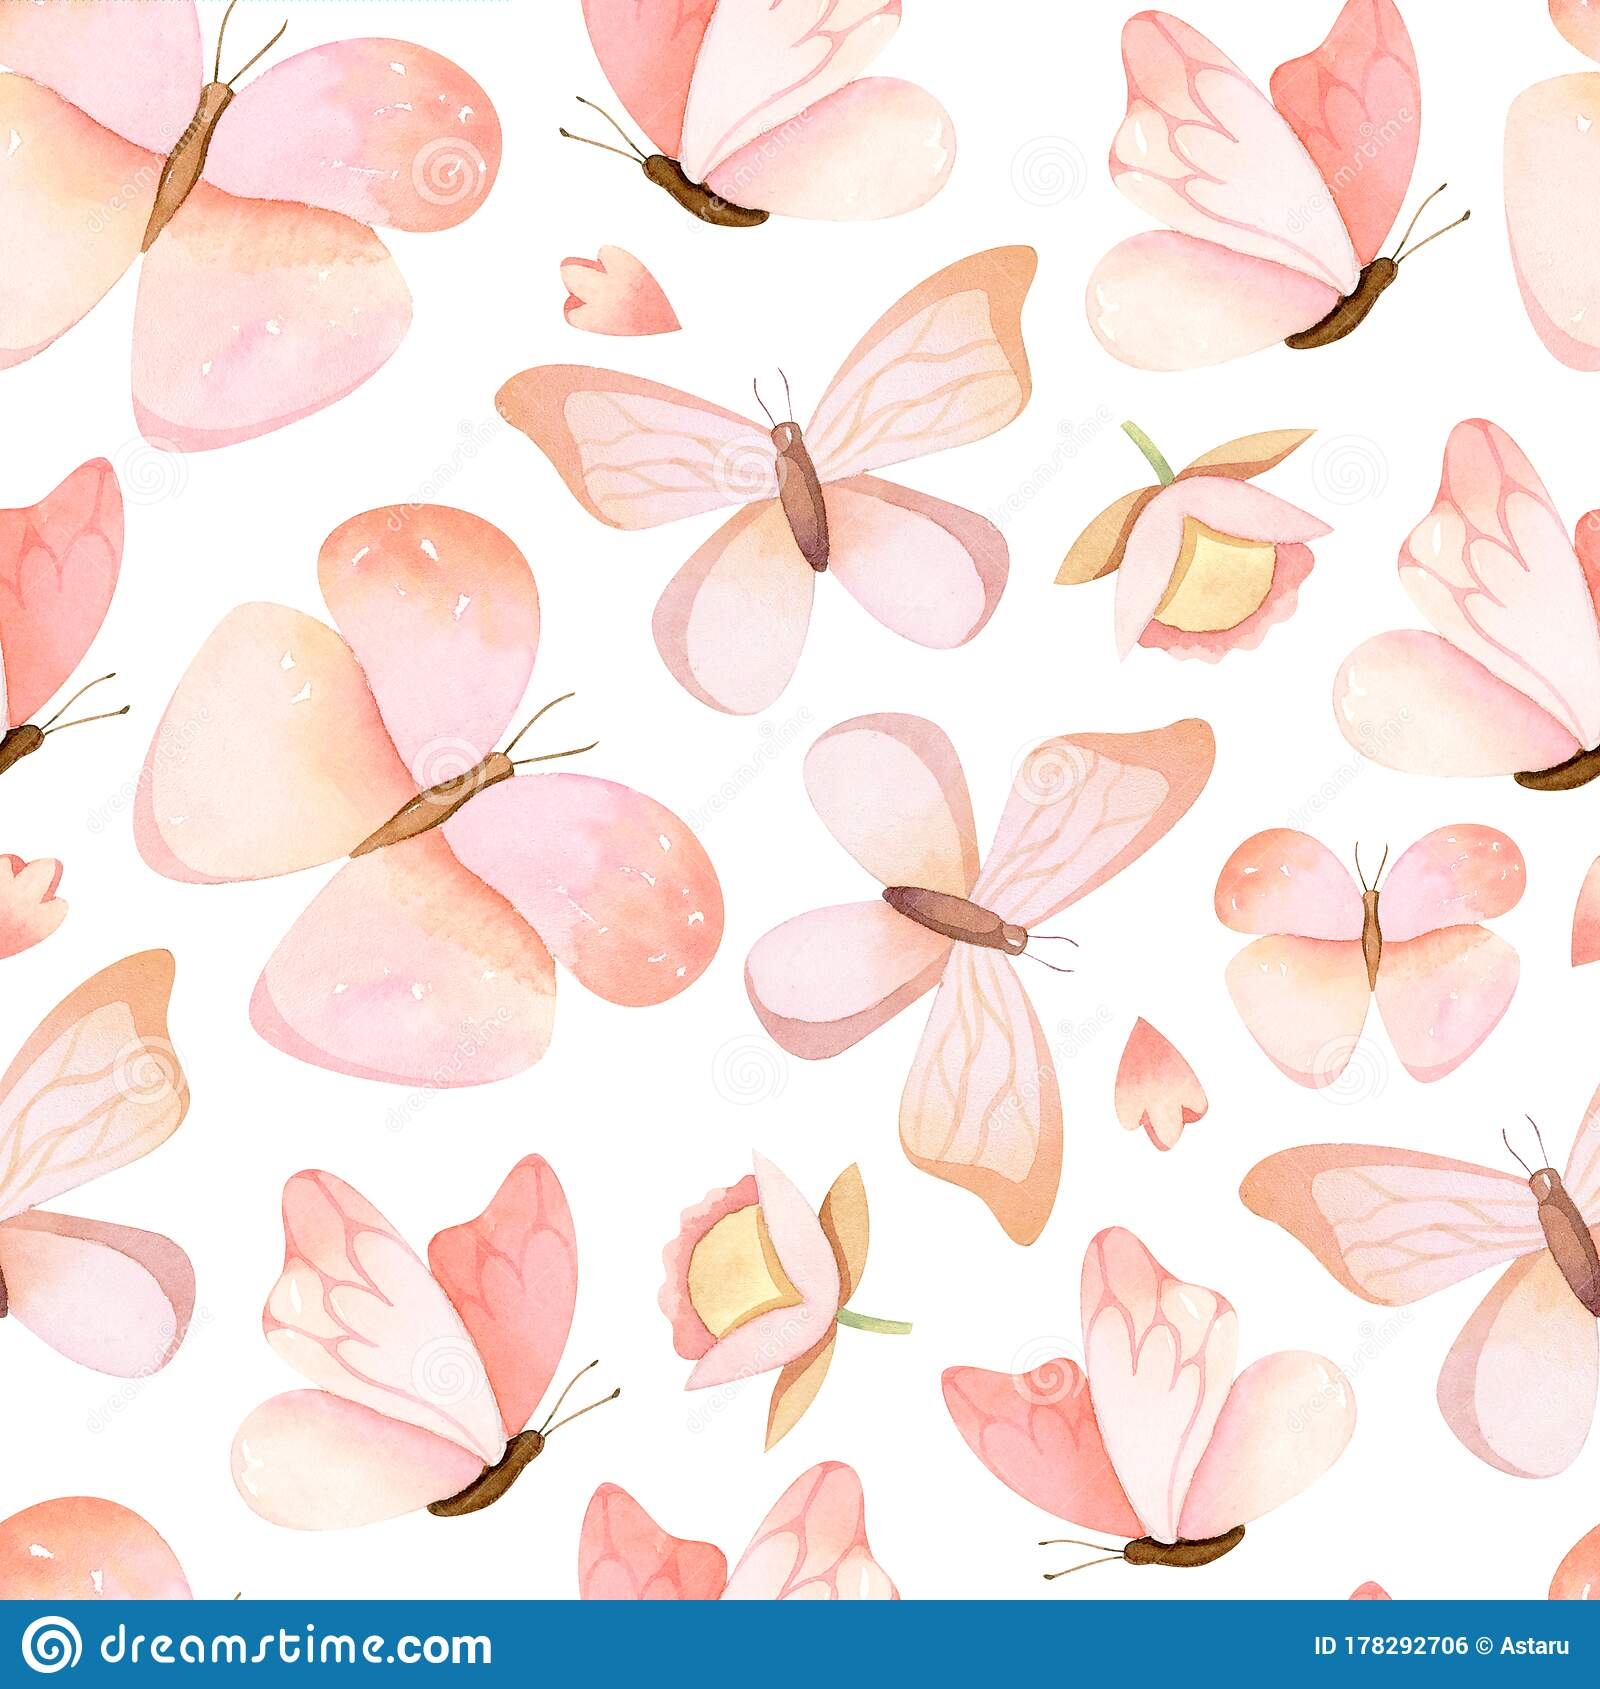 Hand Drawn Pastel Pink Butterflies Watercolor Seamless Pattern Stock Illustration Illustration Of Painted Butterfly 178292706